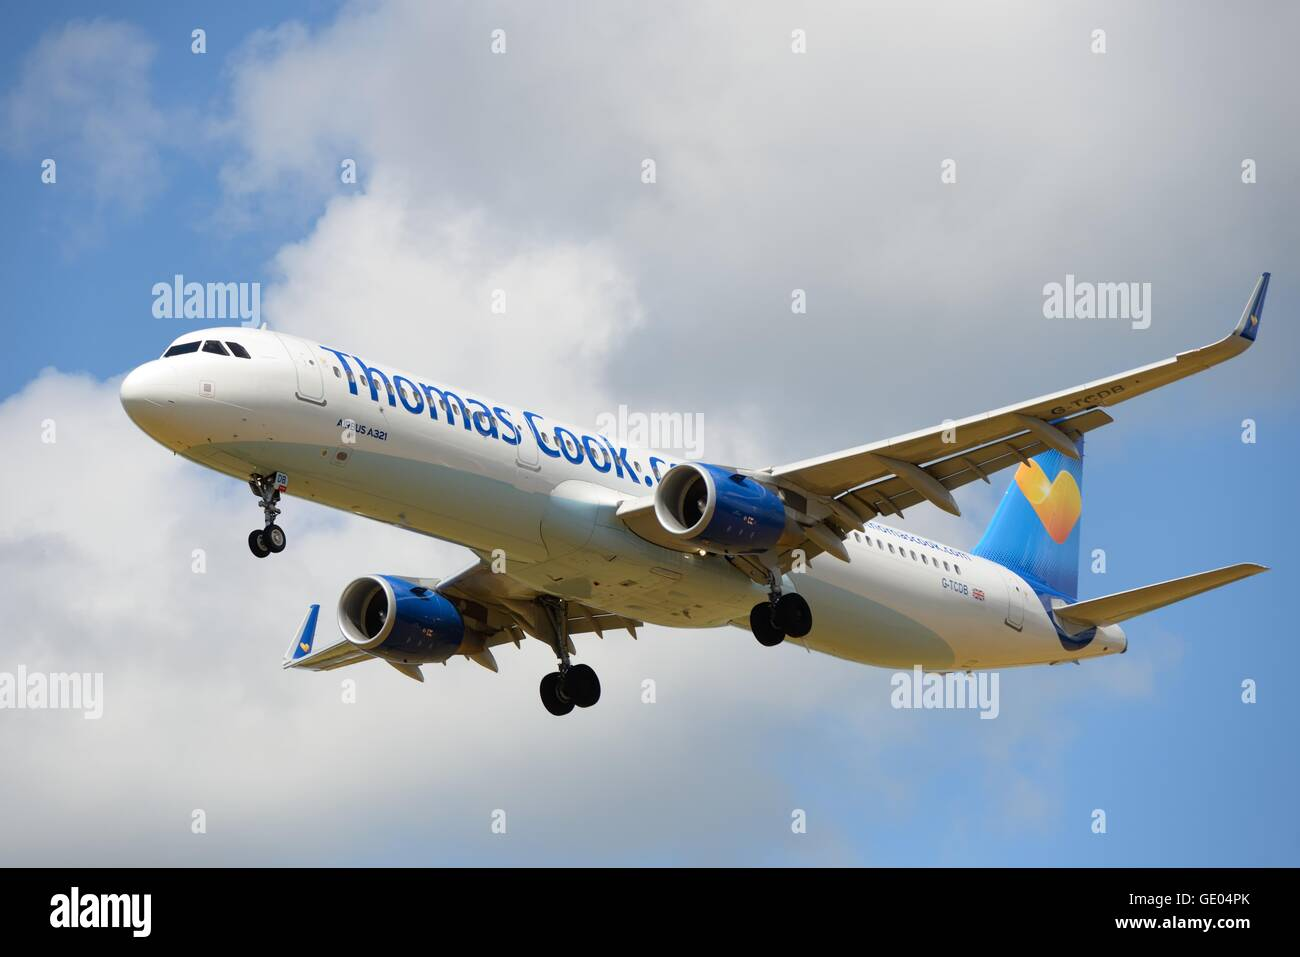 A Thomas Cook aircraft on final approach to airport in Glasgow, Scotland, UK - Stock Image